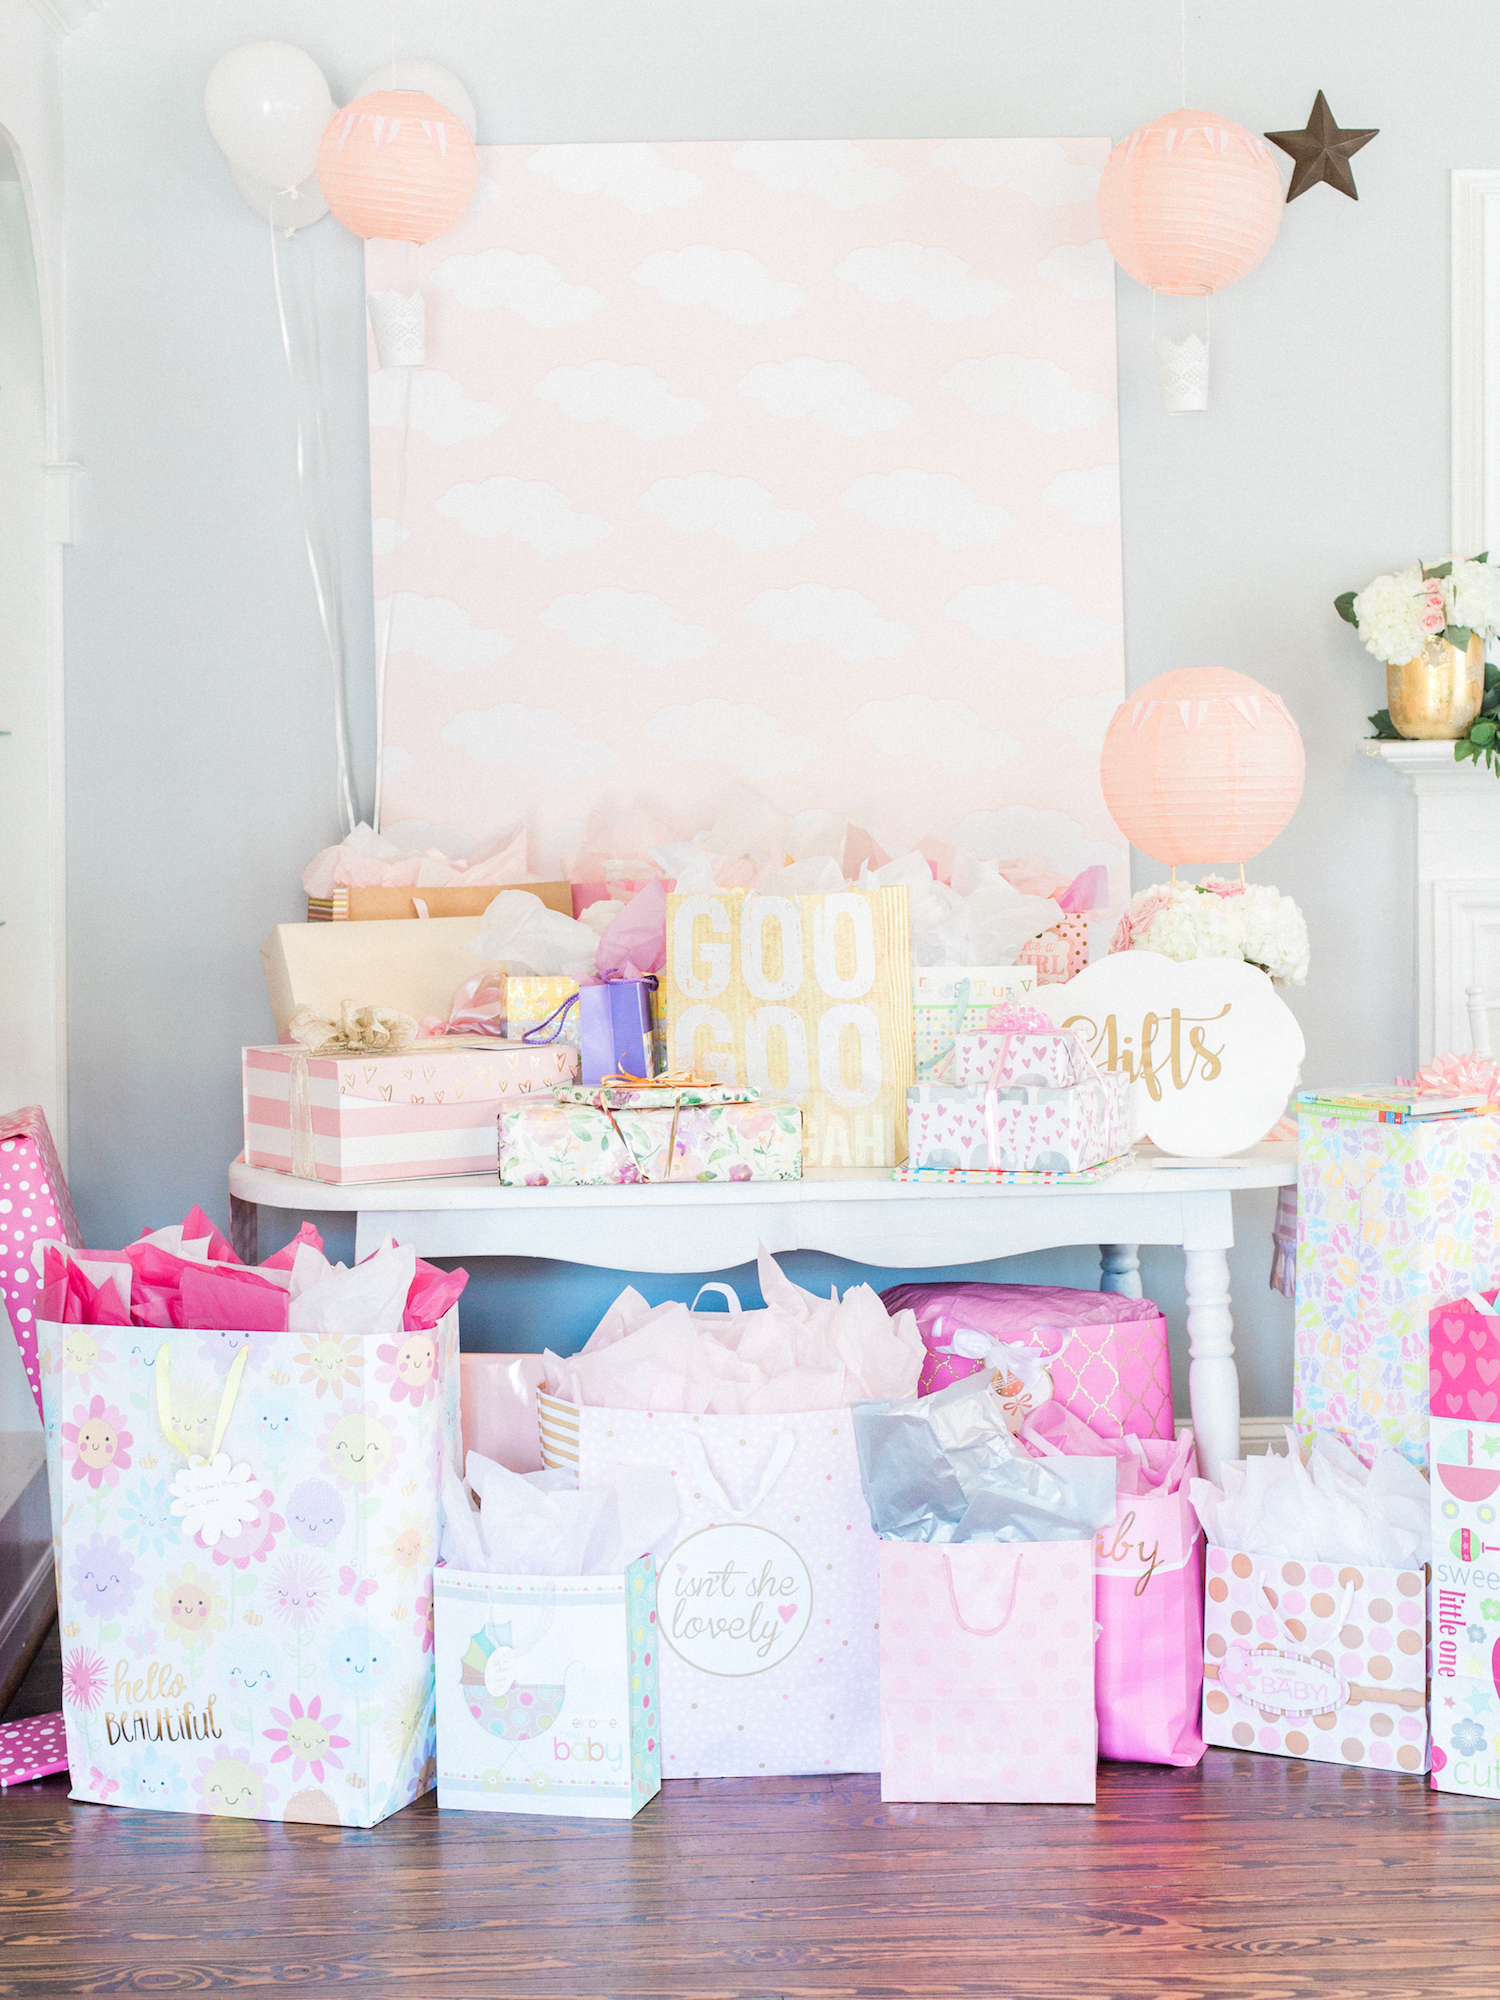 Baby shower gift table and ideas. Travel themed shower at The Gilbert House. Antique event rentals. Hot air balloon decor. Cloud back drop. Photography by Kesia Marie Photography Atlanta Fine Art Event Photographer